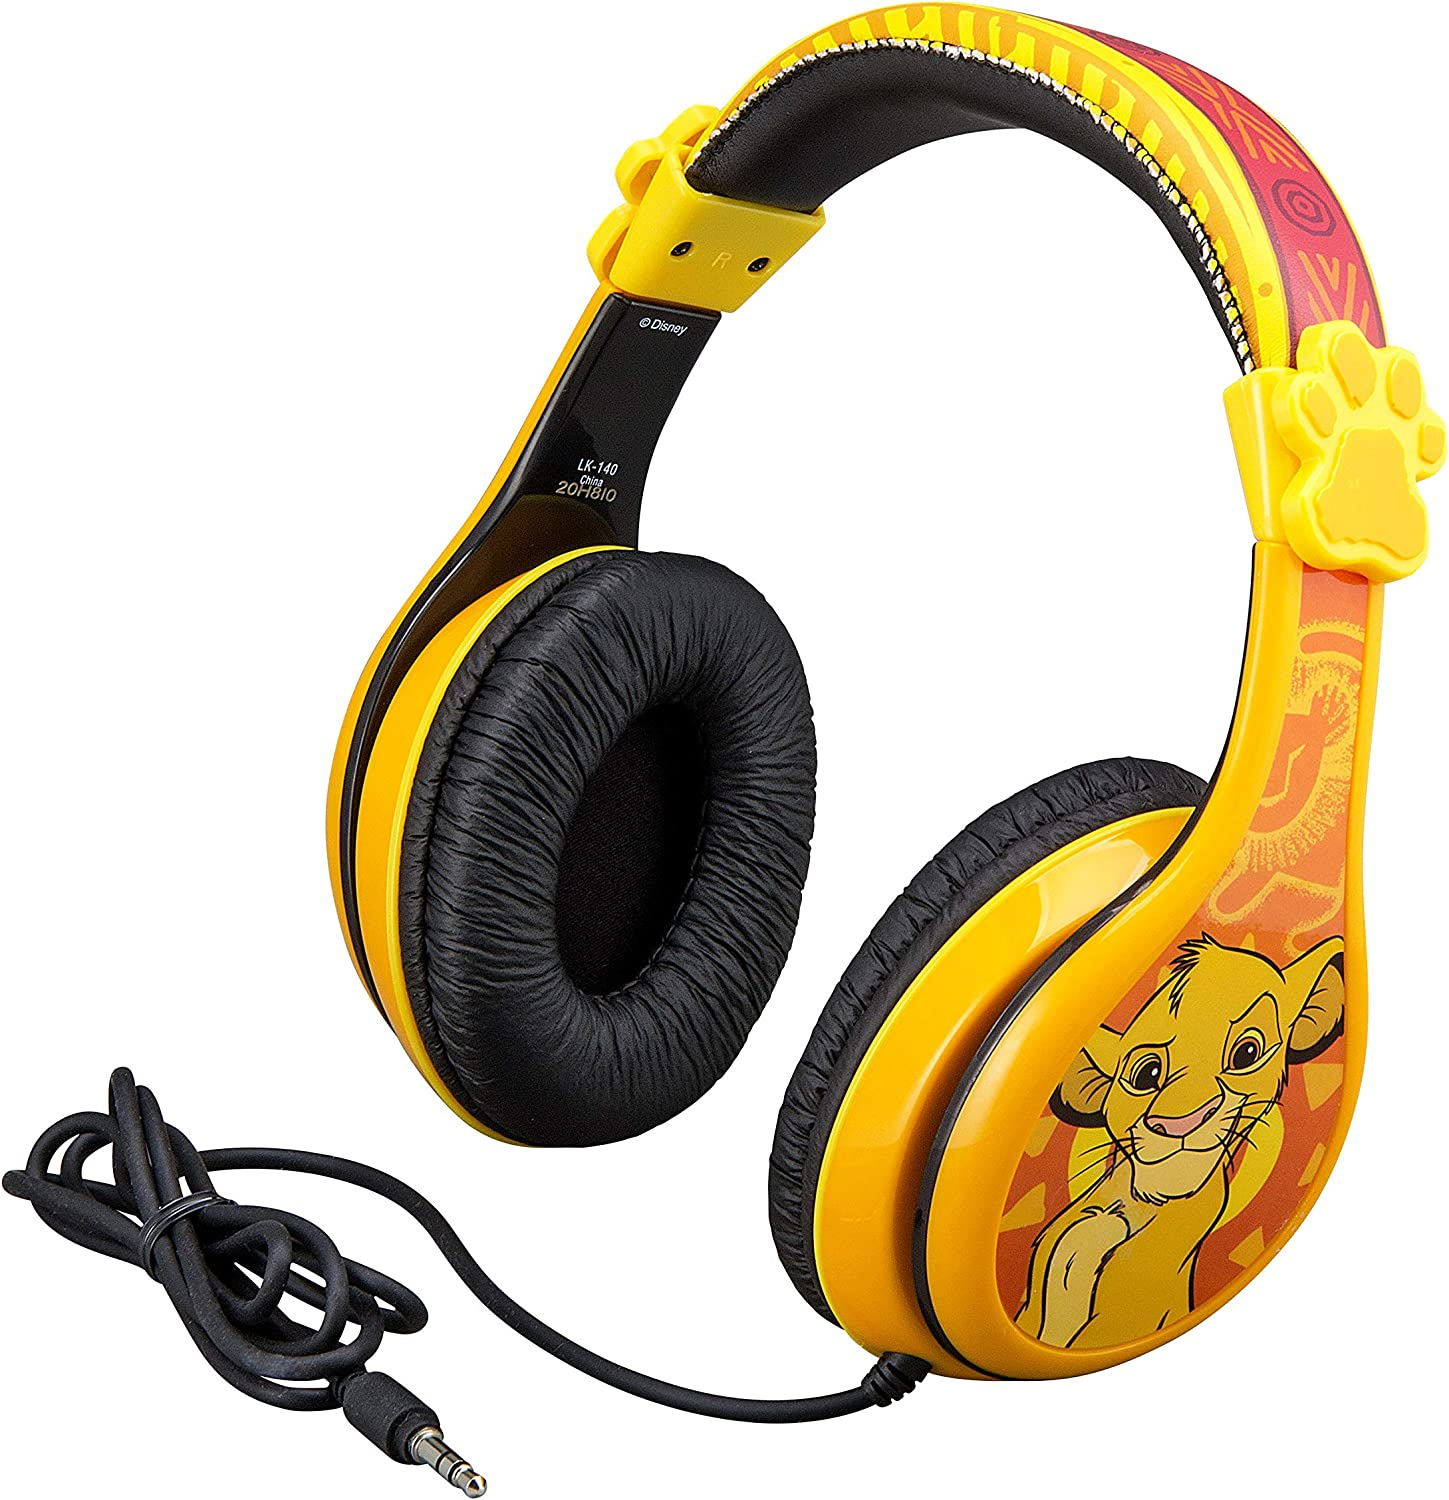 Kids Headphones for Kids Lion King Adjustable Stereo Tangle-Free 3.5mm Jack Wired Cord Over Ear Headset for Children Parental Volume Control Kid Friendly Safe Perfect for School Home Travel